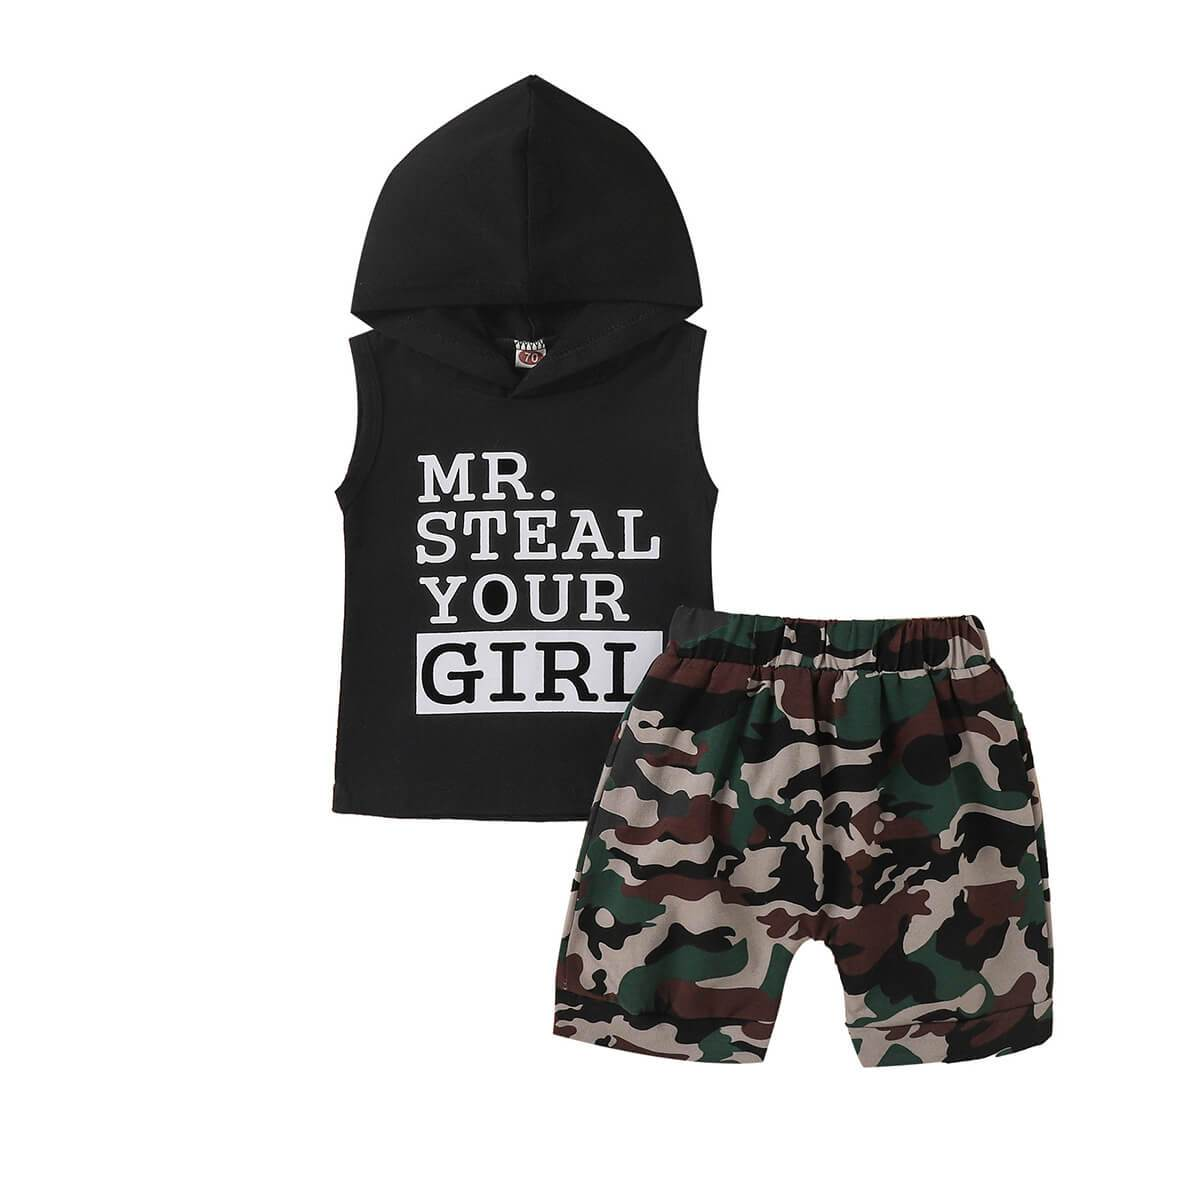 Steal Your Girl Camo Set